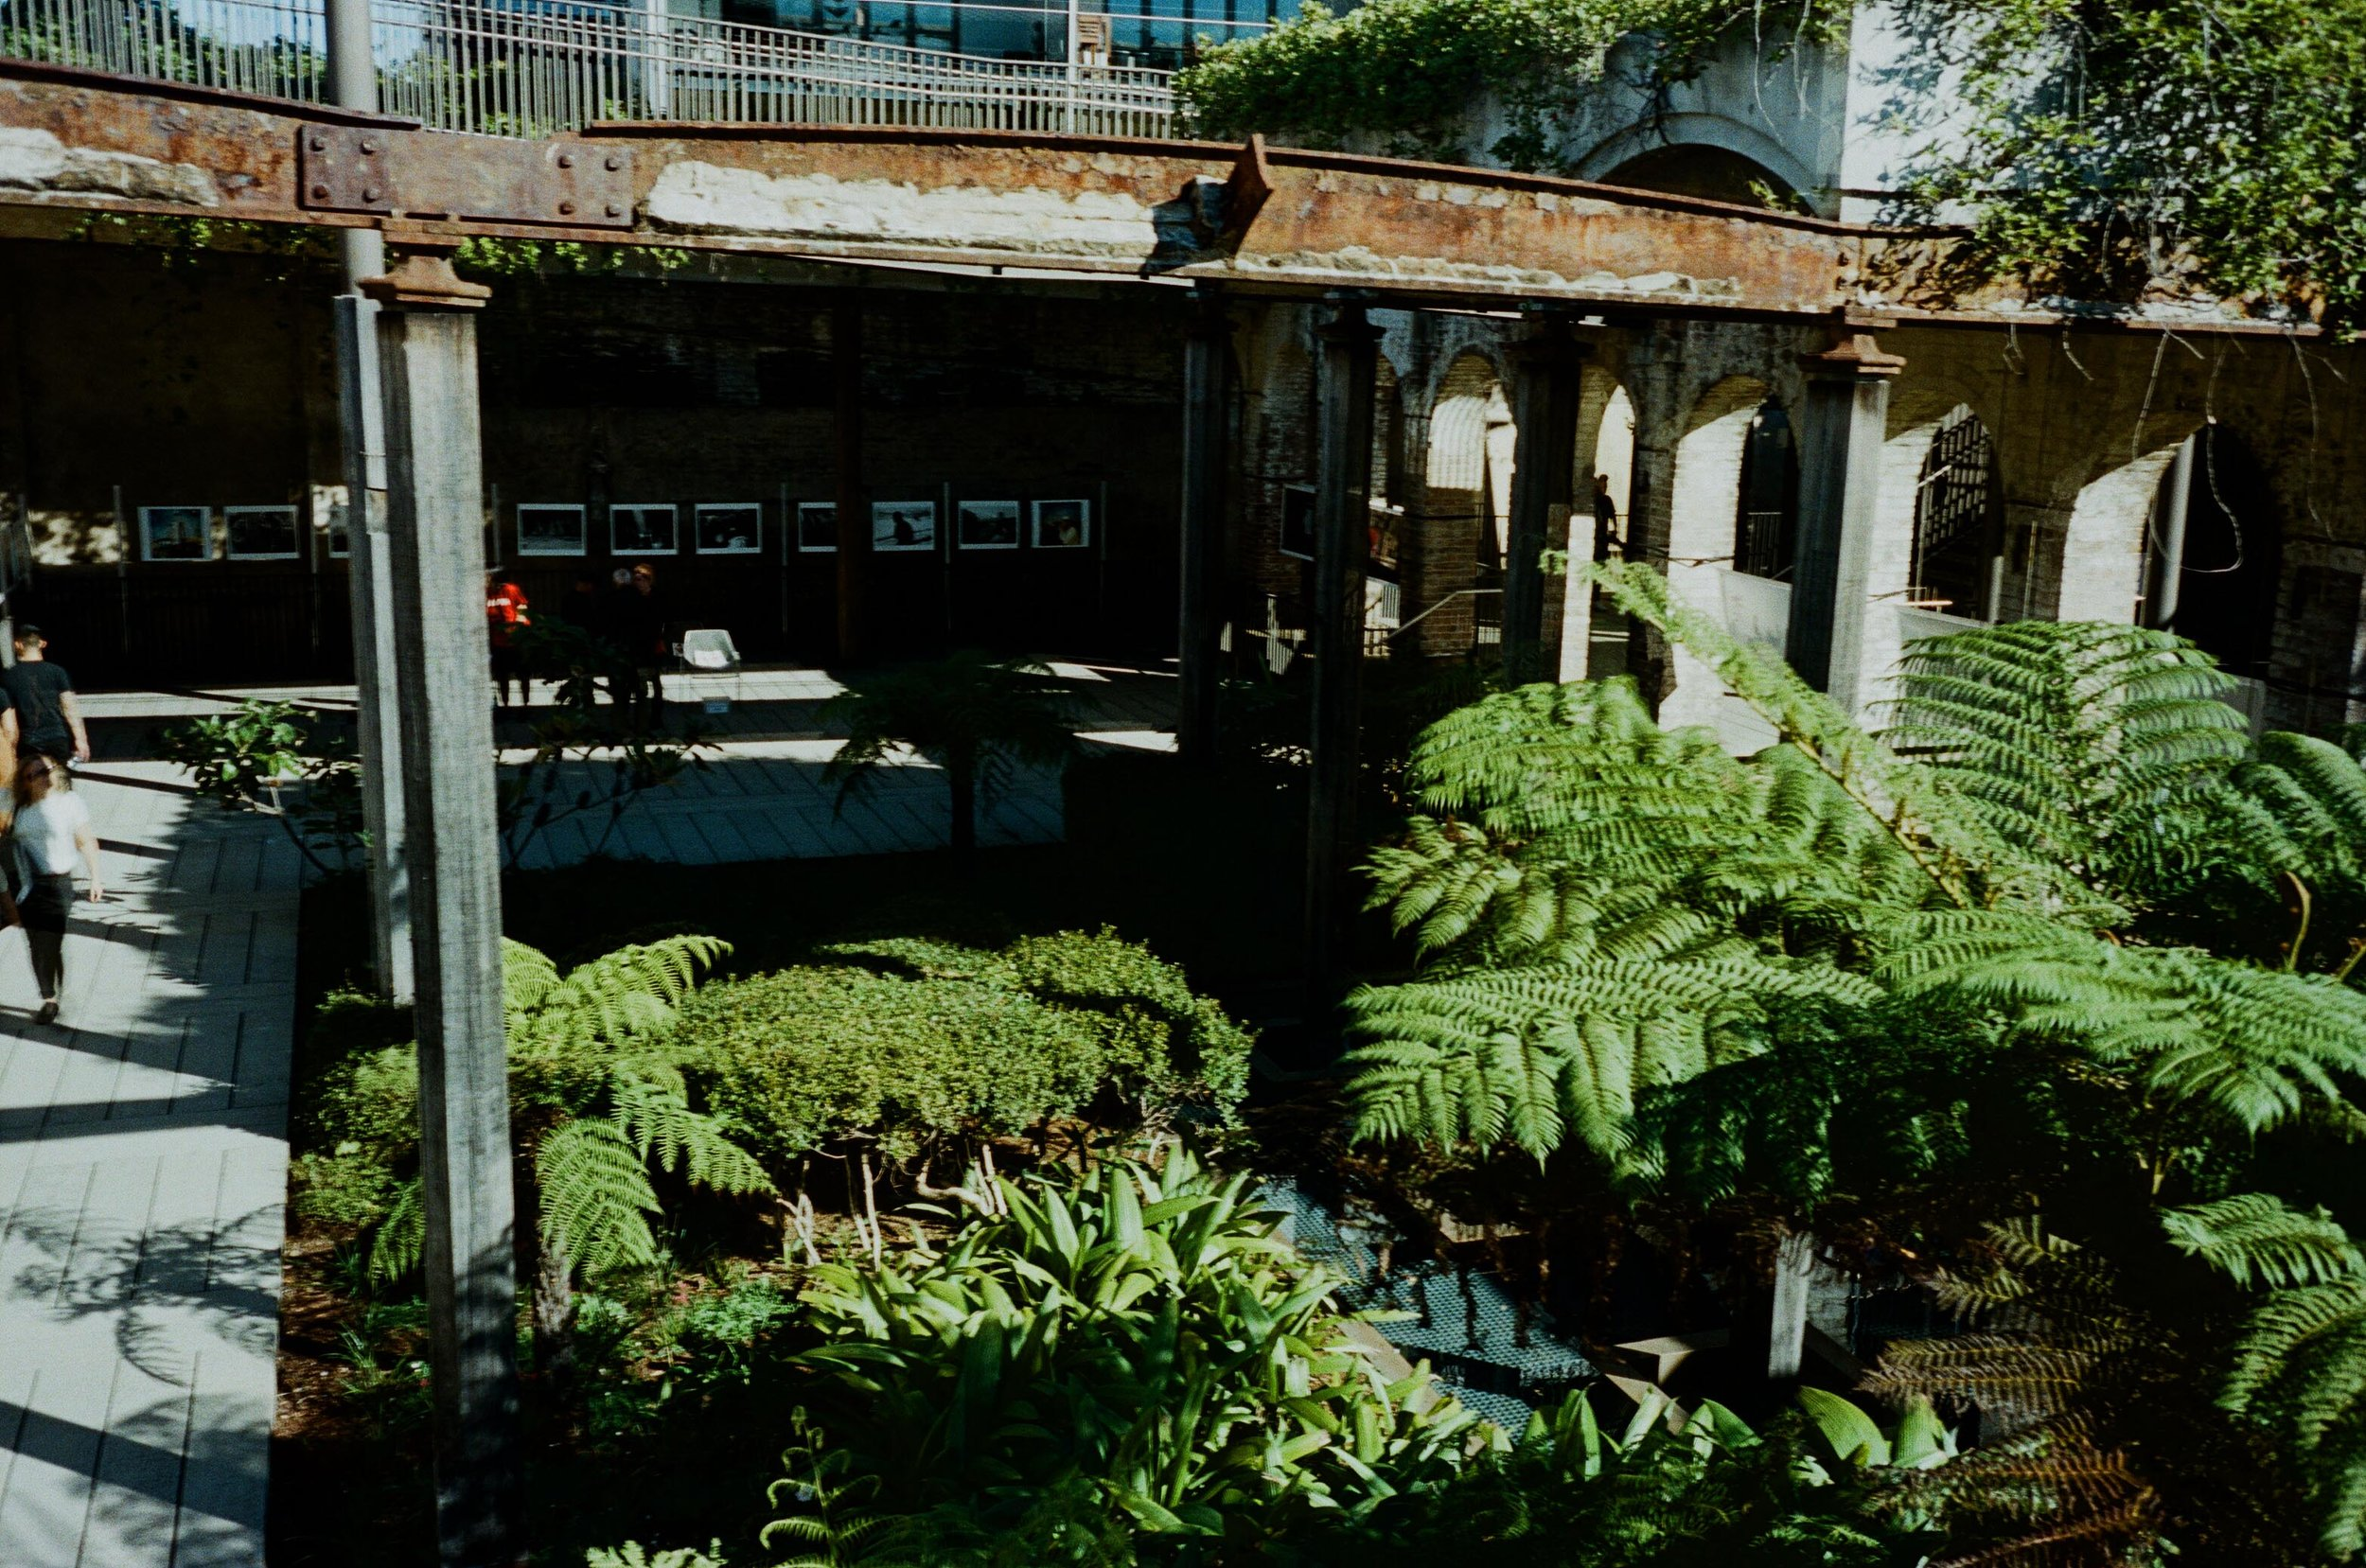 an outdoor art gallery in Paddington